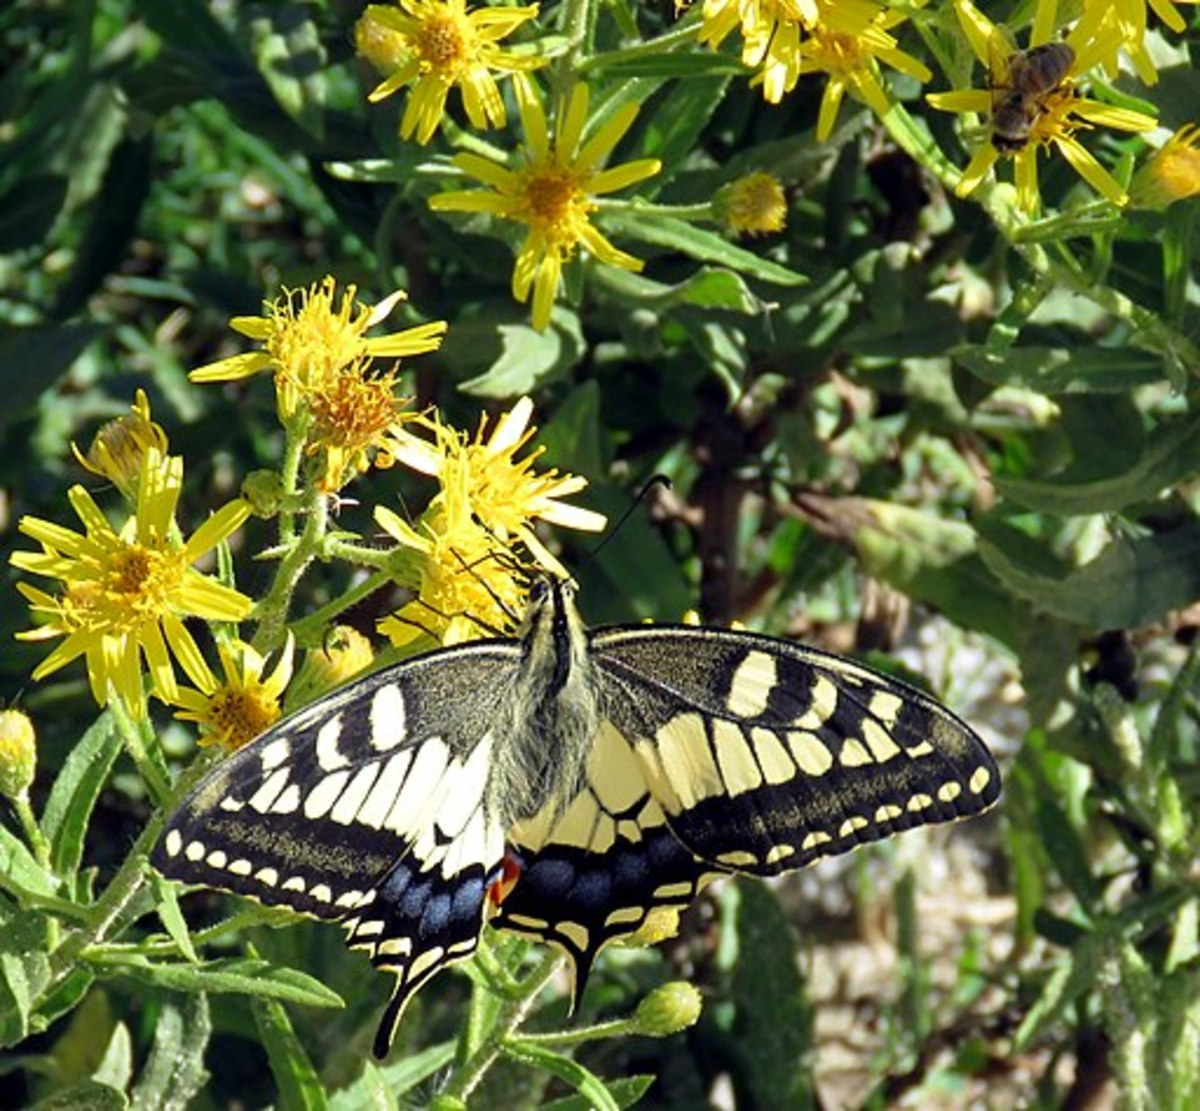 A common yellow swallow tail butterfly (Papilio machaon) and a bee of unknown species on yellow flowers.